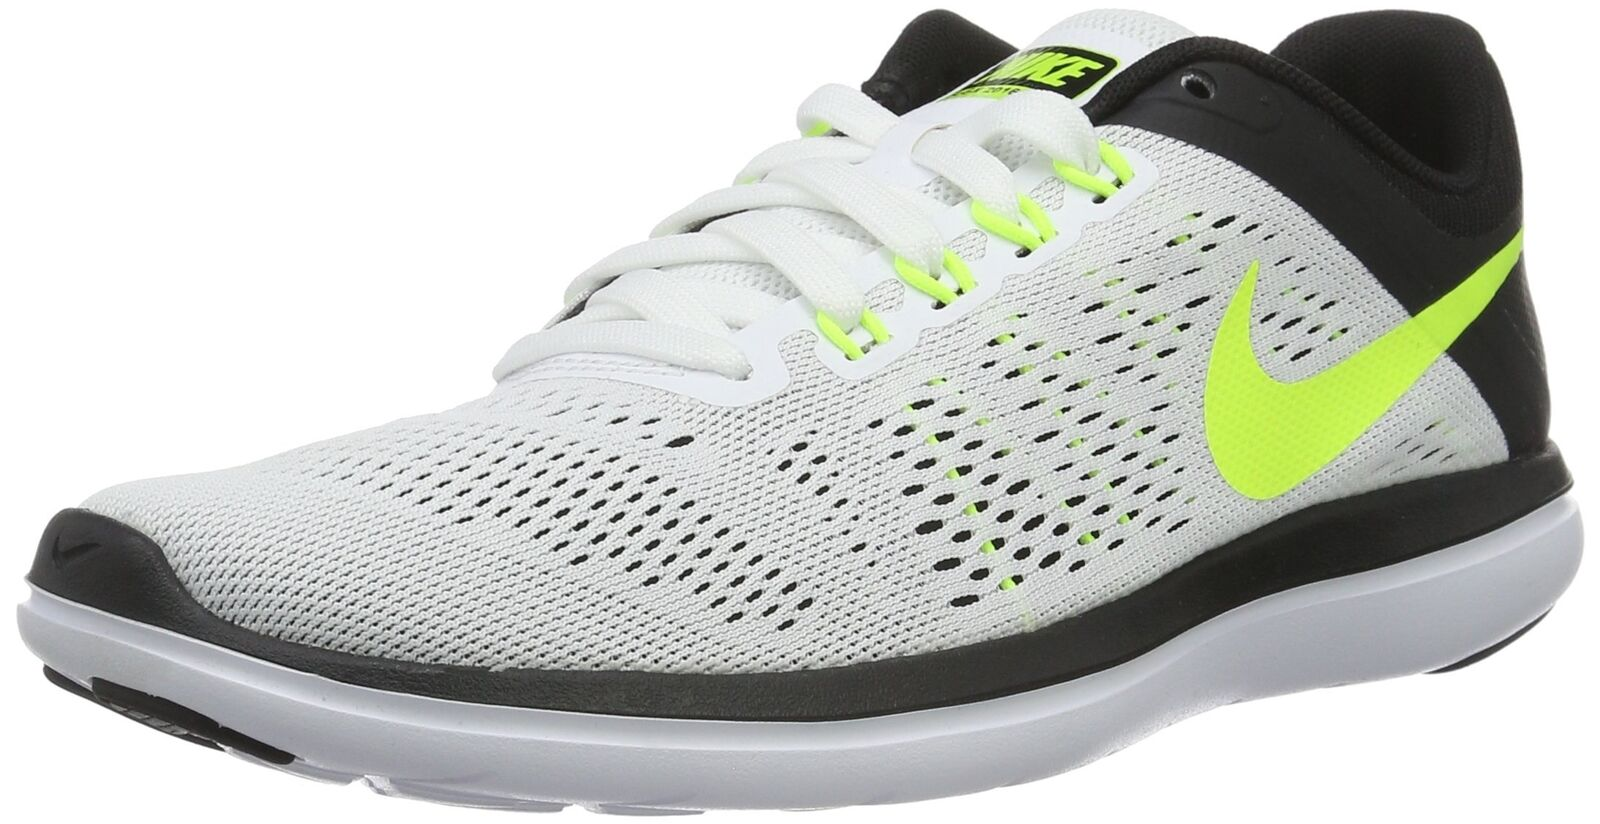 Cheap women's shoes women's shoes Nike Flex Experience RN 5 Running Shoe White/Volt/Black 11.5 DPrice reduction US